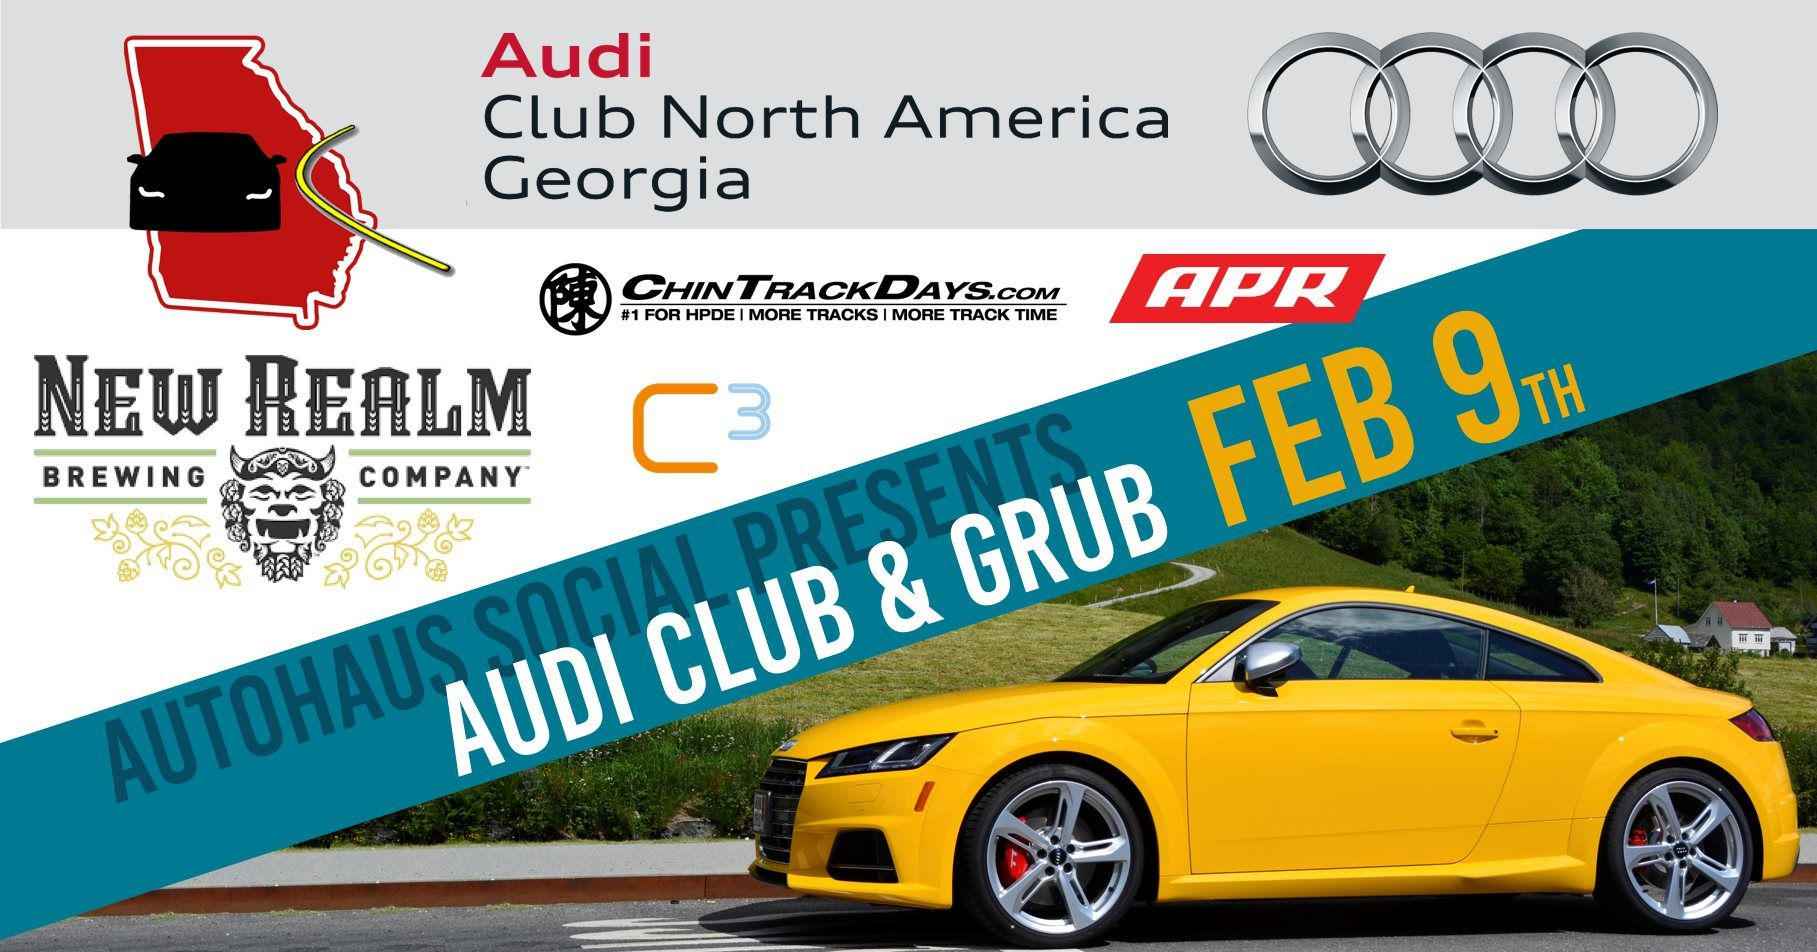 Autohaus Social Presents Audi Club & Grub!